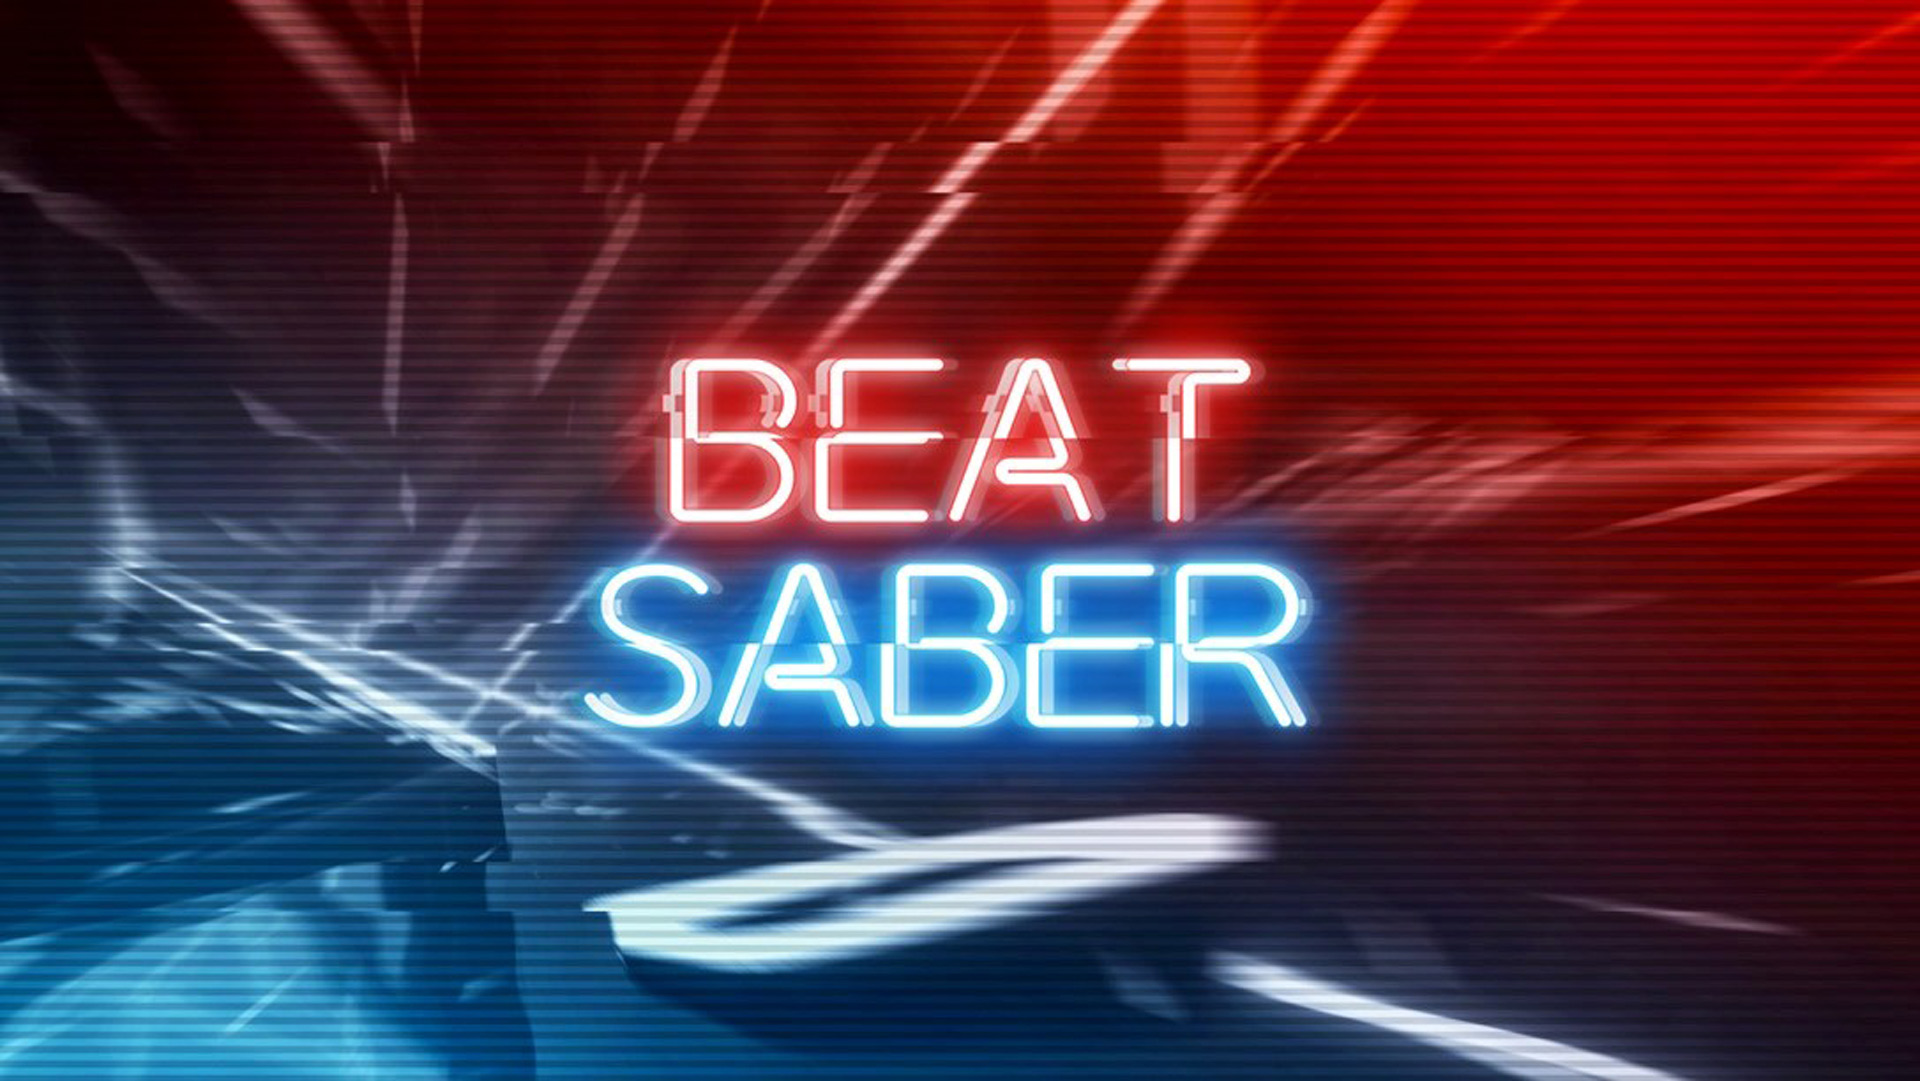 'Beat Saber' is Heading to PSVR November 20th with New Songs & Features, Trailer Here